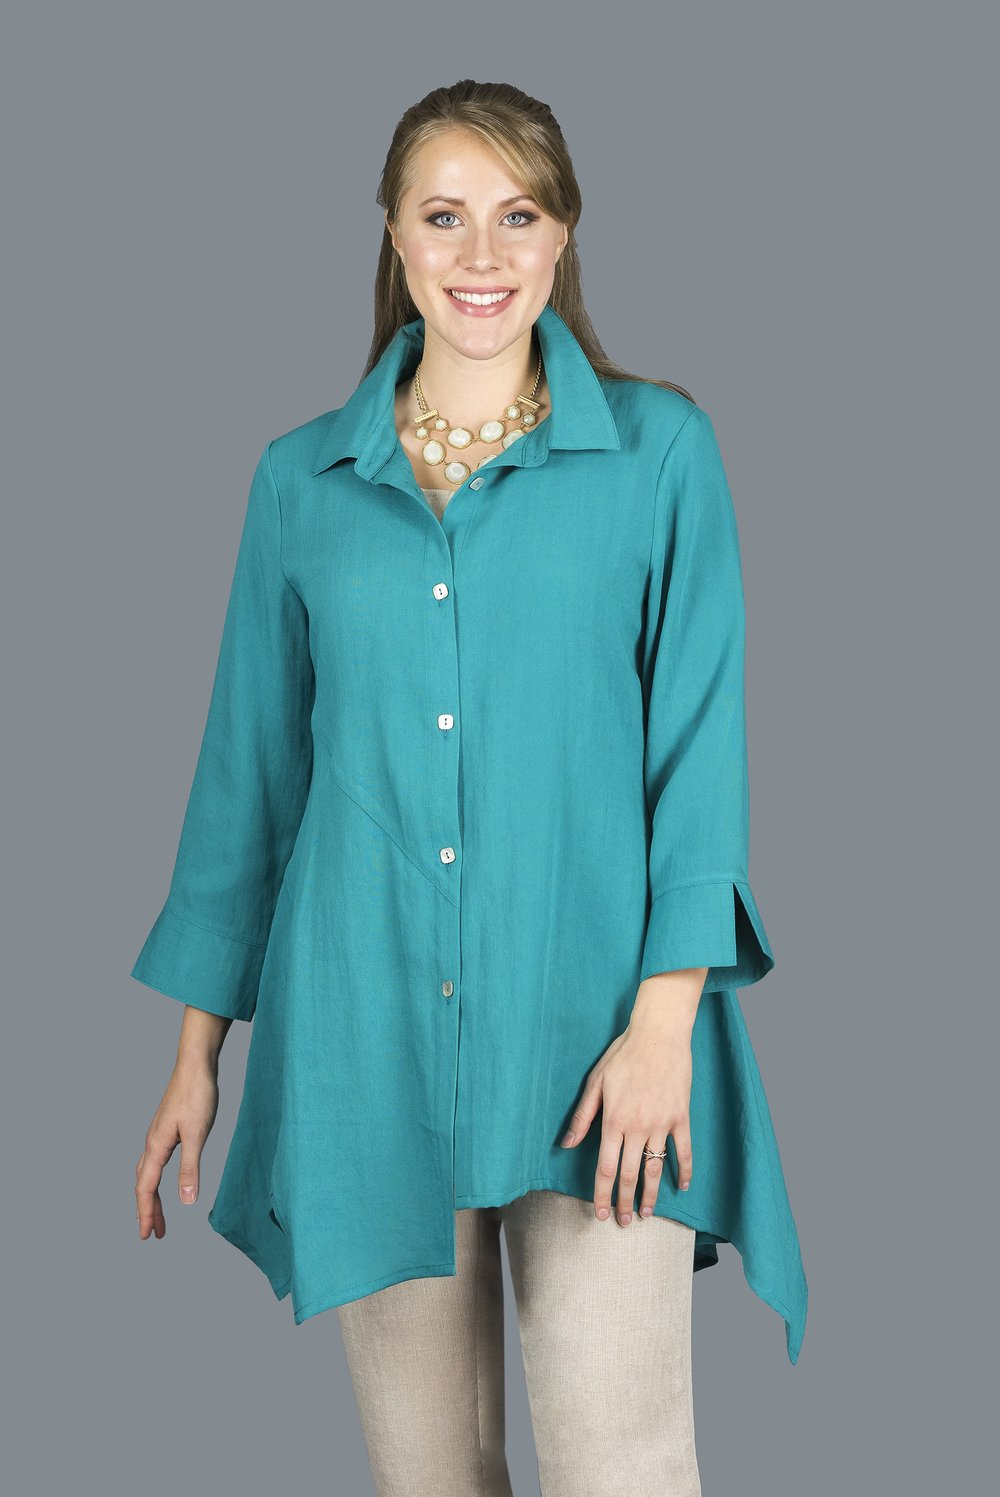 AA209 - Asymmetric Panels Tunic    CL5915 - Topaz